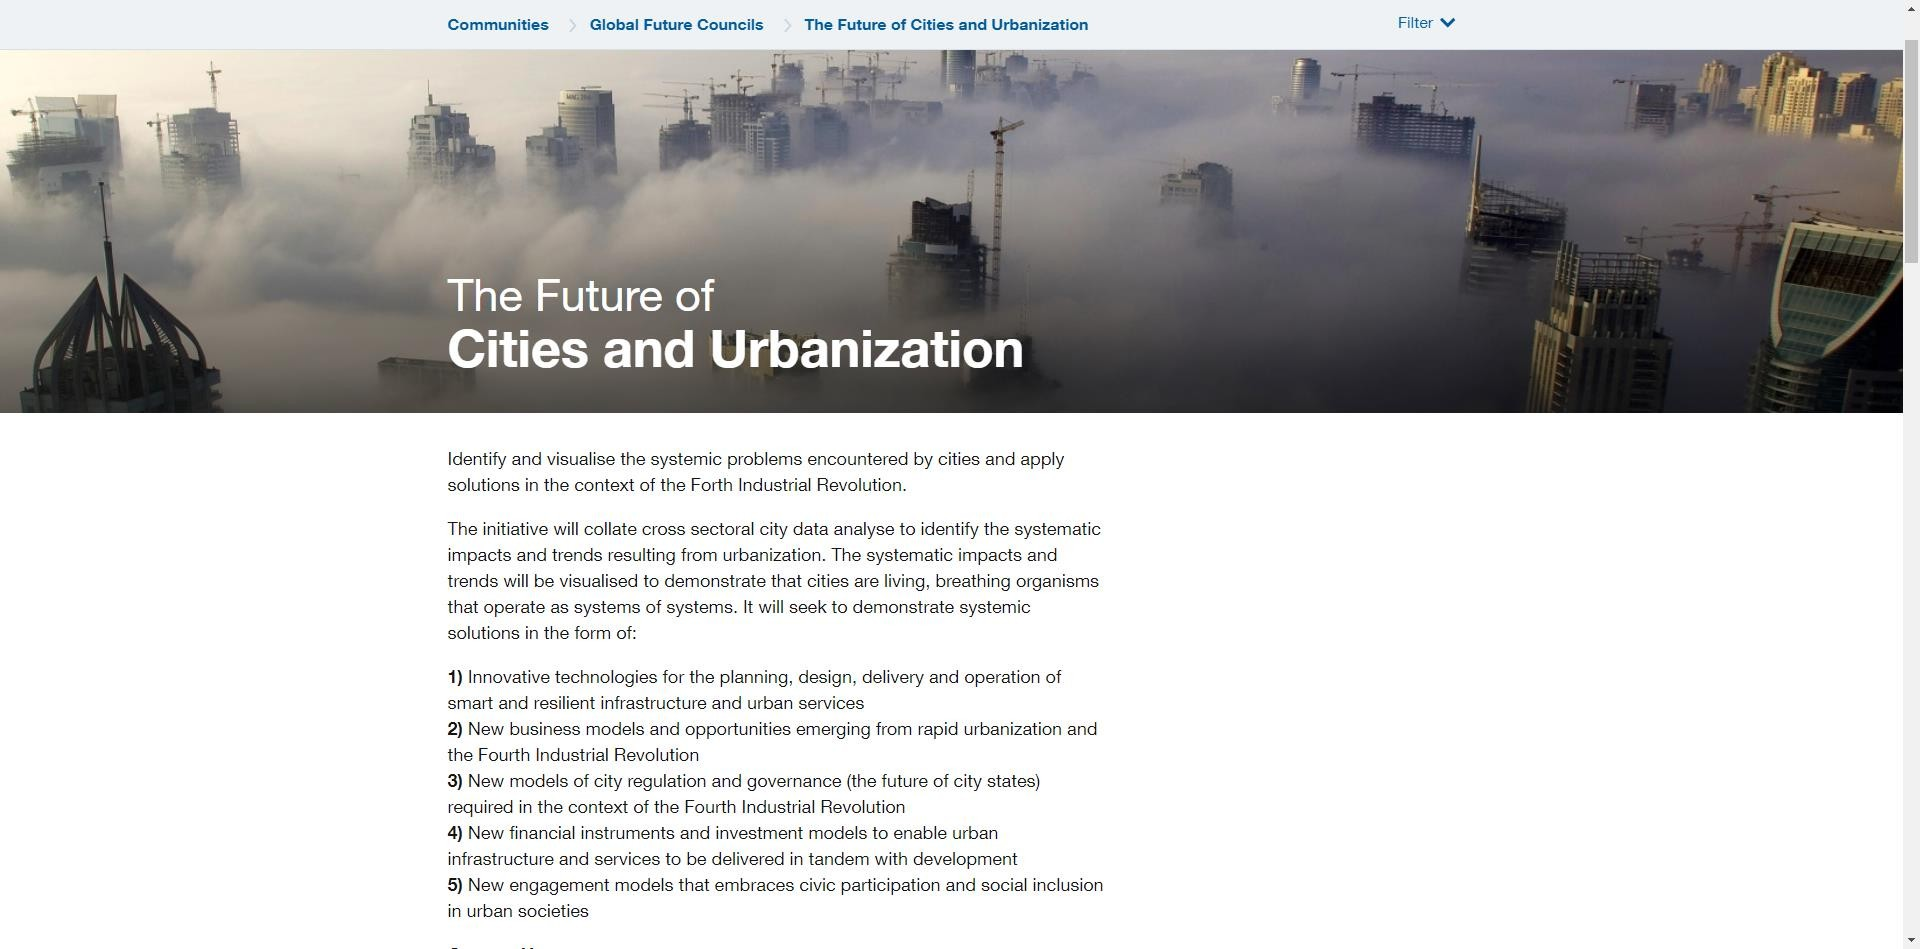 The future of cities and urbanization